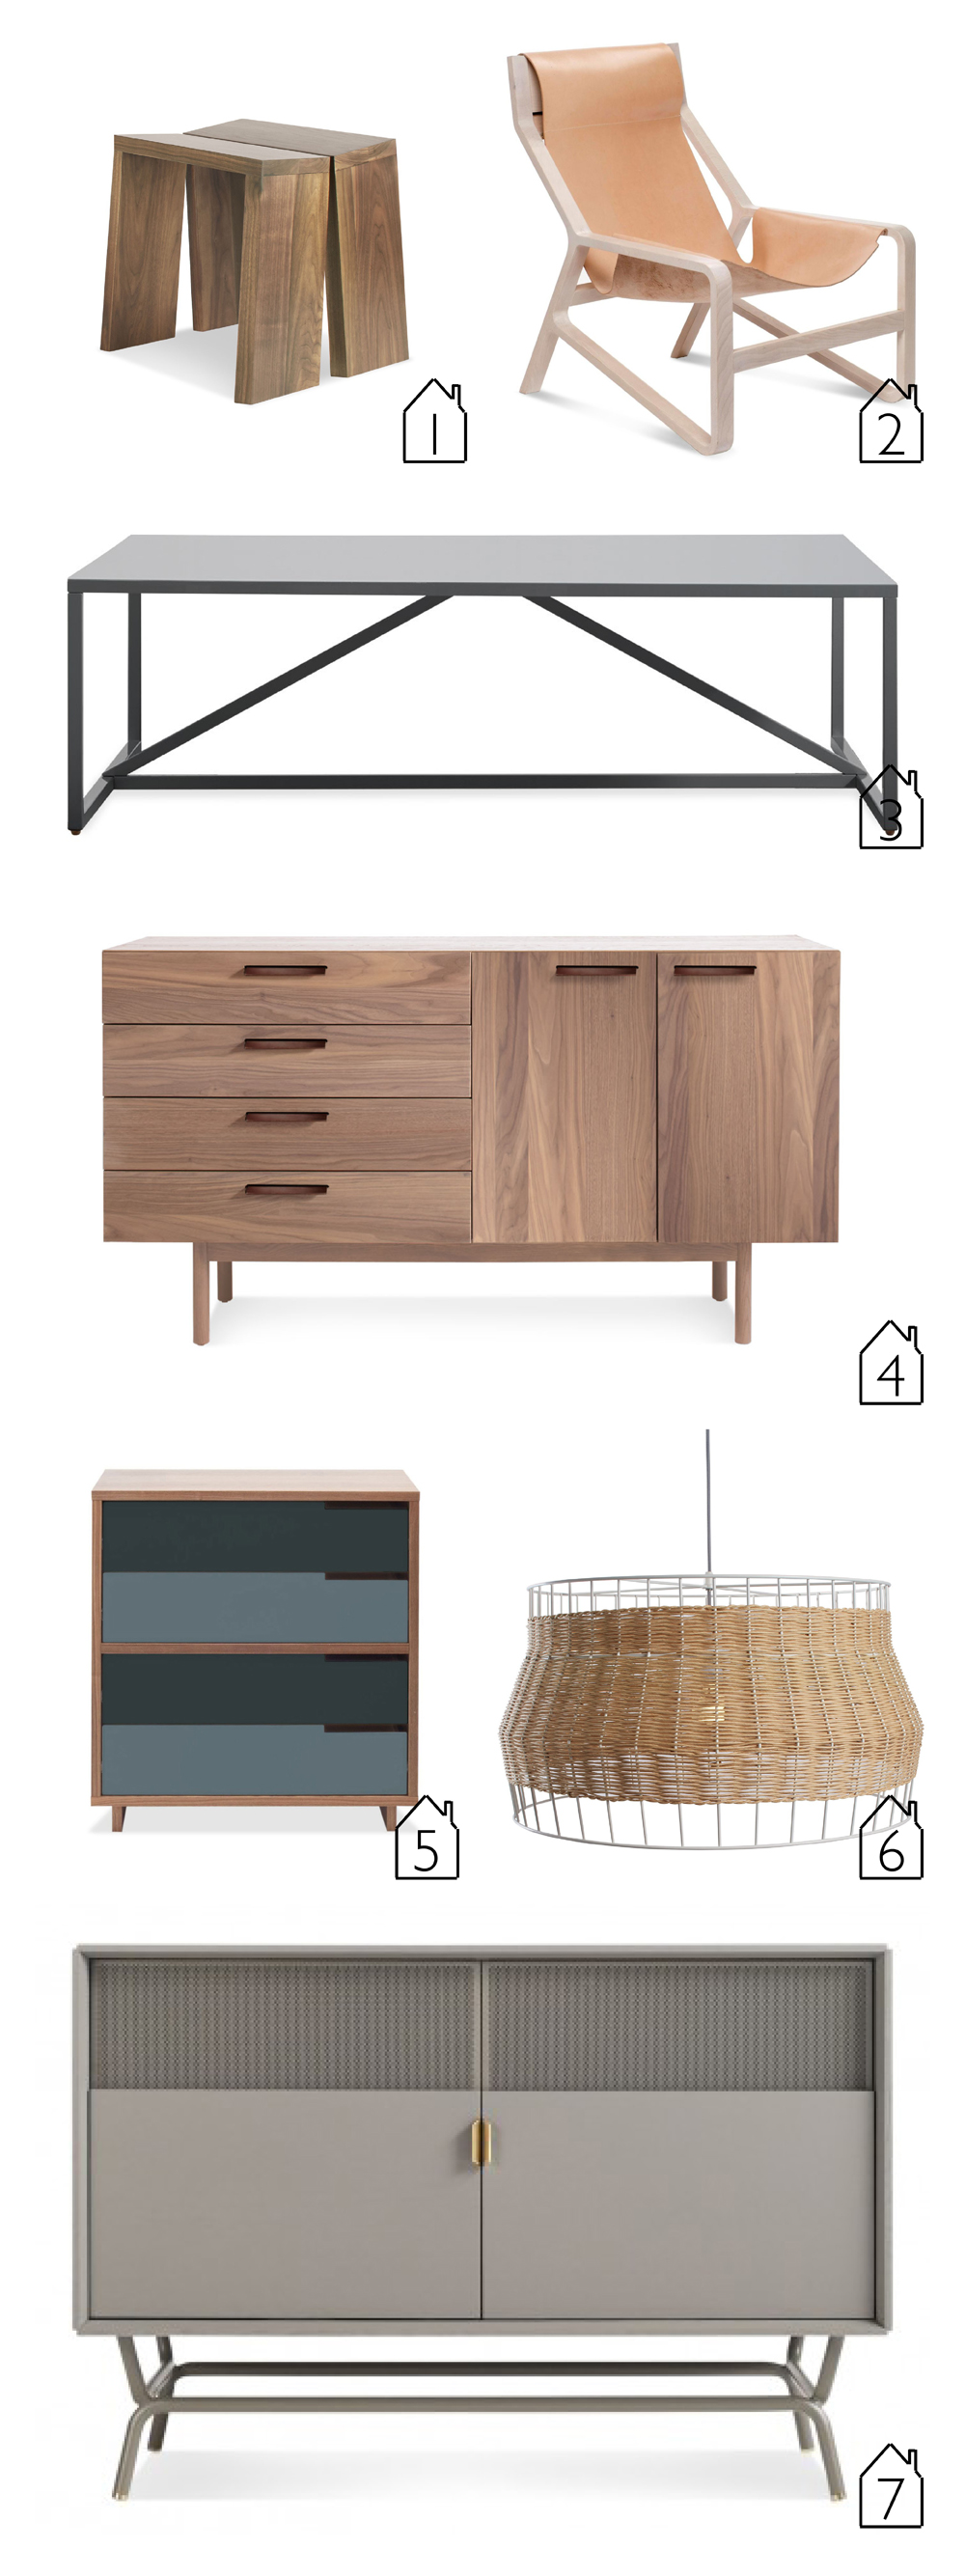 "1.  Amicable Split 19"" Bench   2.  Toro Lounge Chair   3.  Strut Square Coffee Table   4.   Shale 4 Drawer/2 Door Credenza   5.  Modu-licious #4   6.  Laika Large Pendant   7.  Dang Media Stand"